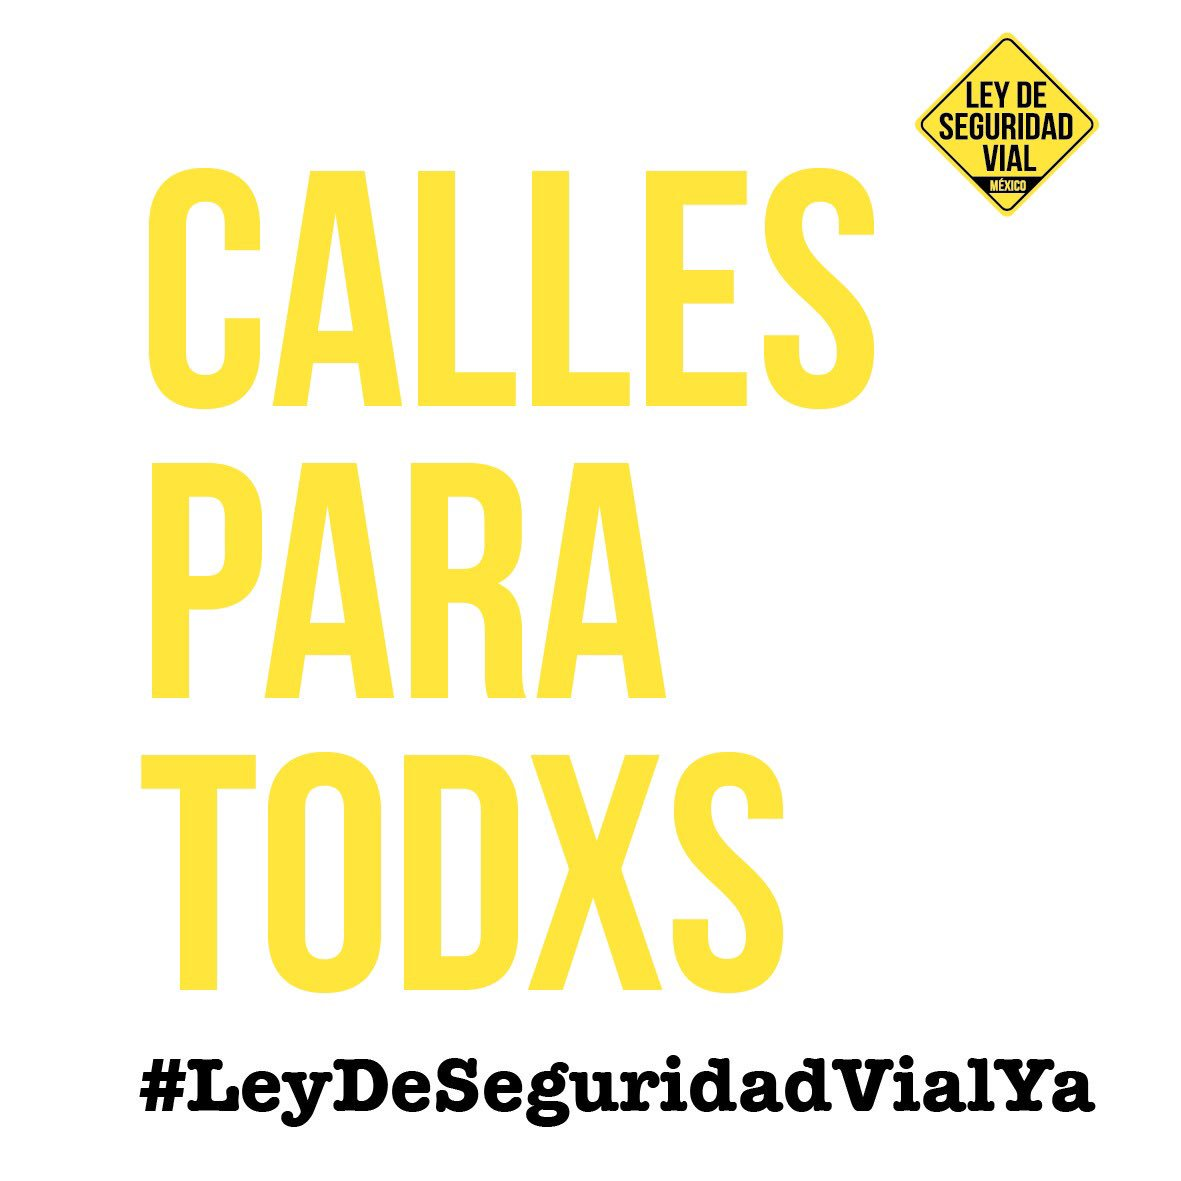 Olivia Olvera's photo on #LeyDeSeguridadVial